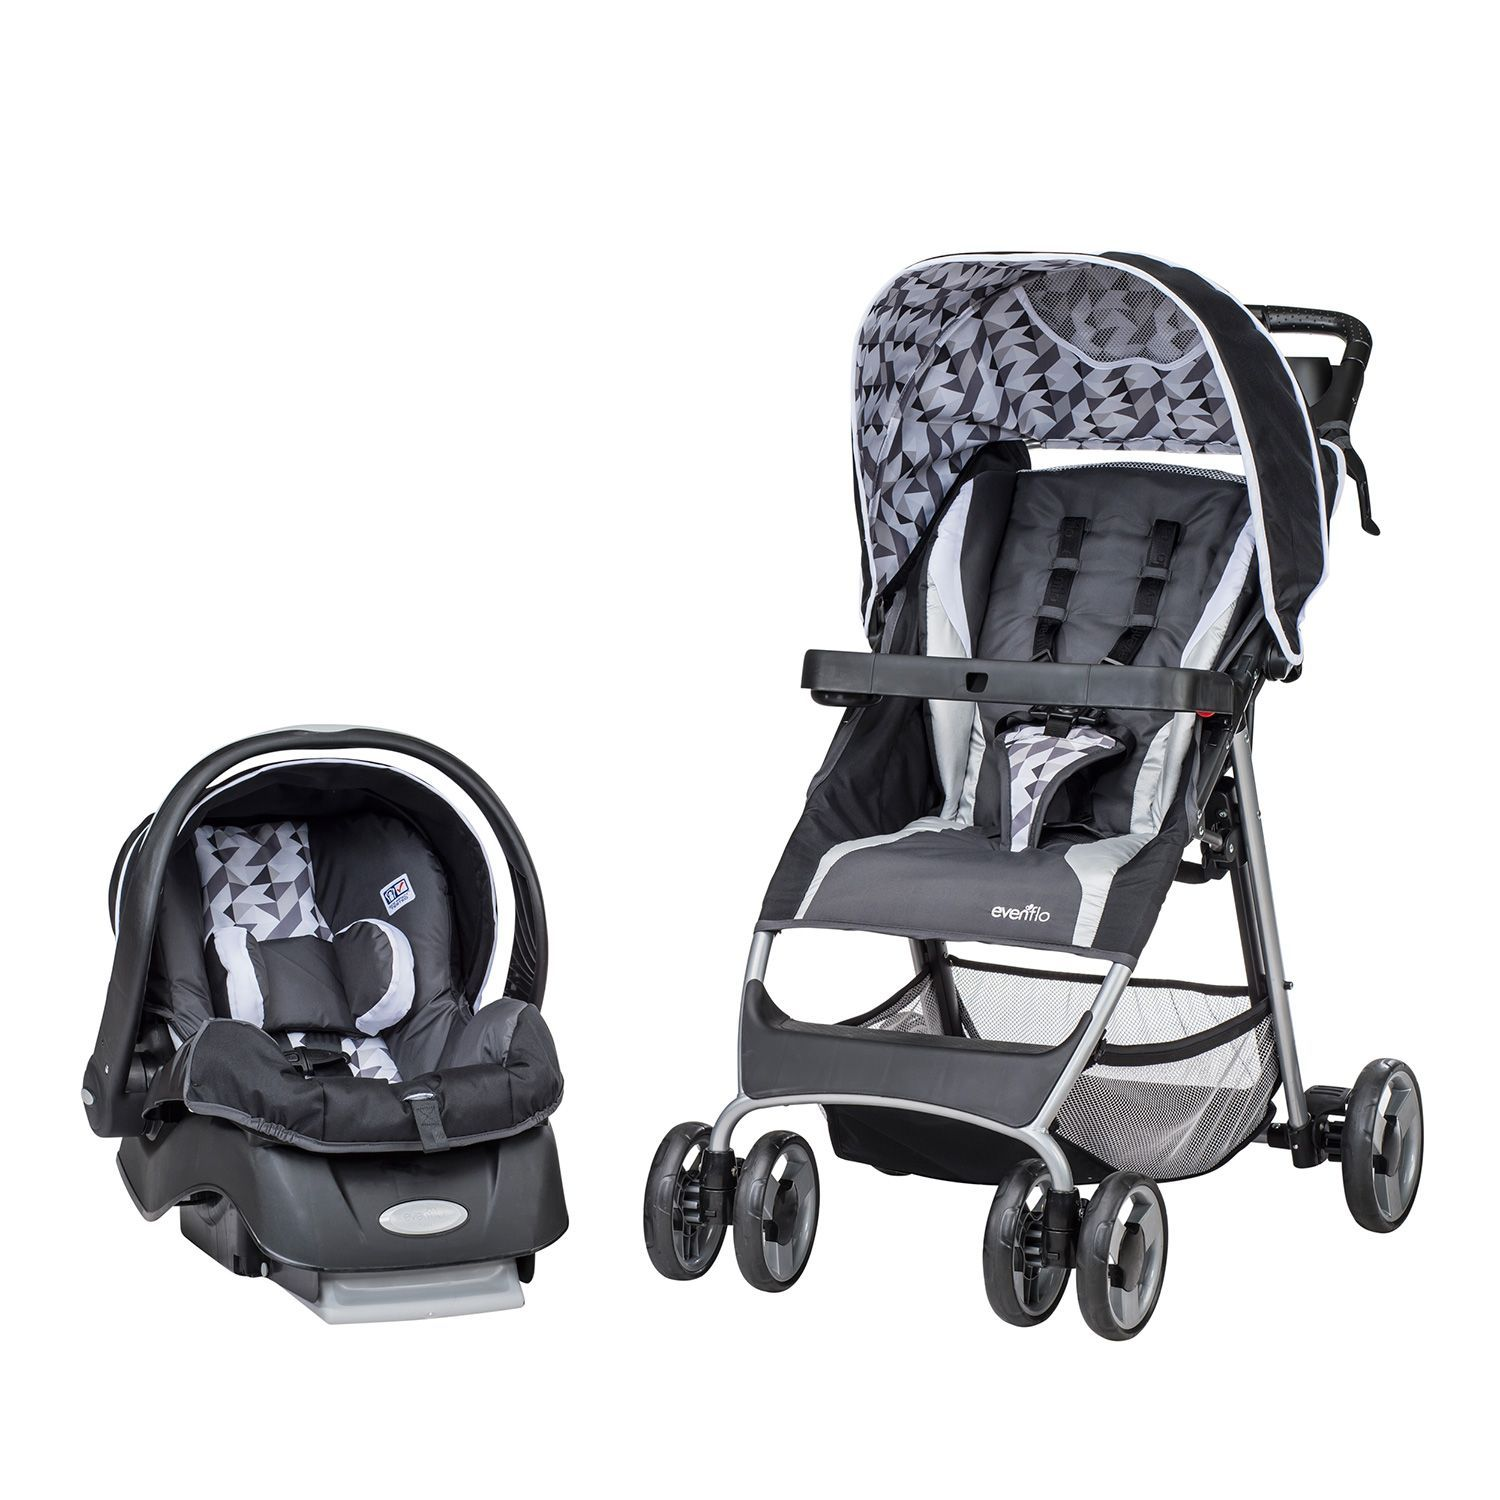 Evenflo Flexlite Travel System With Embrace Infant Car Seat Raleigh